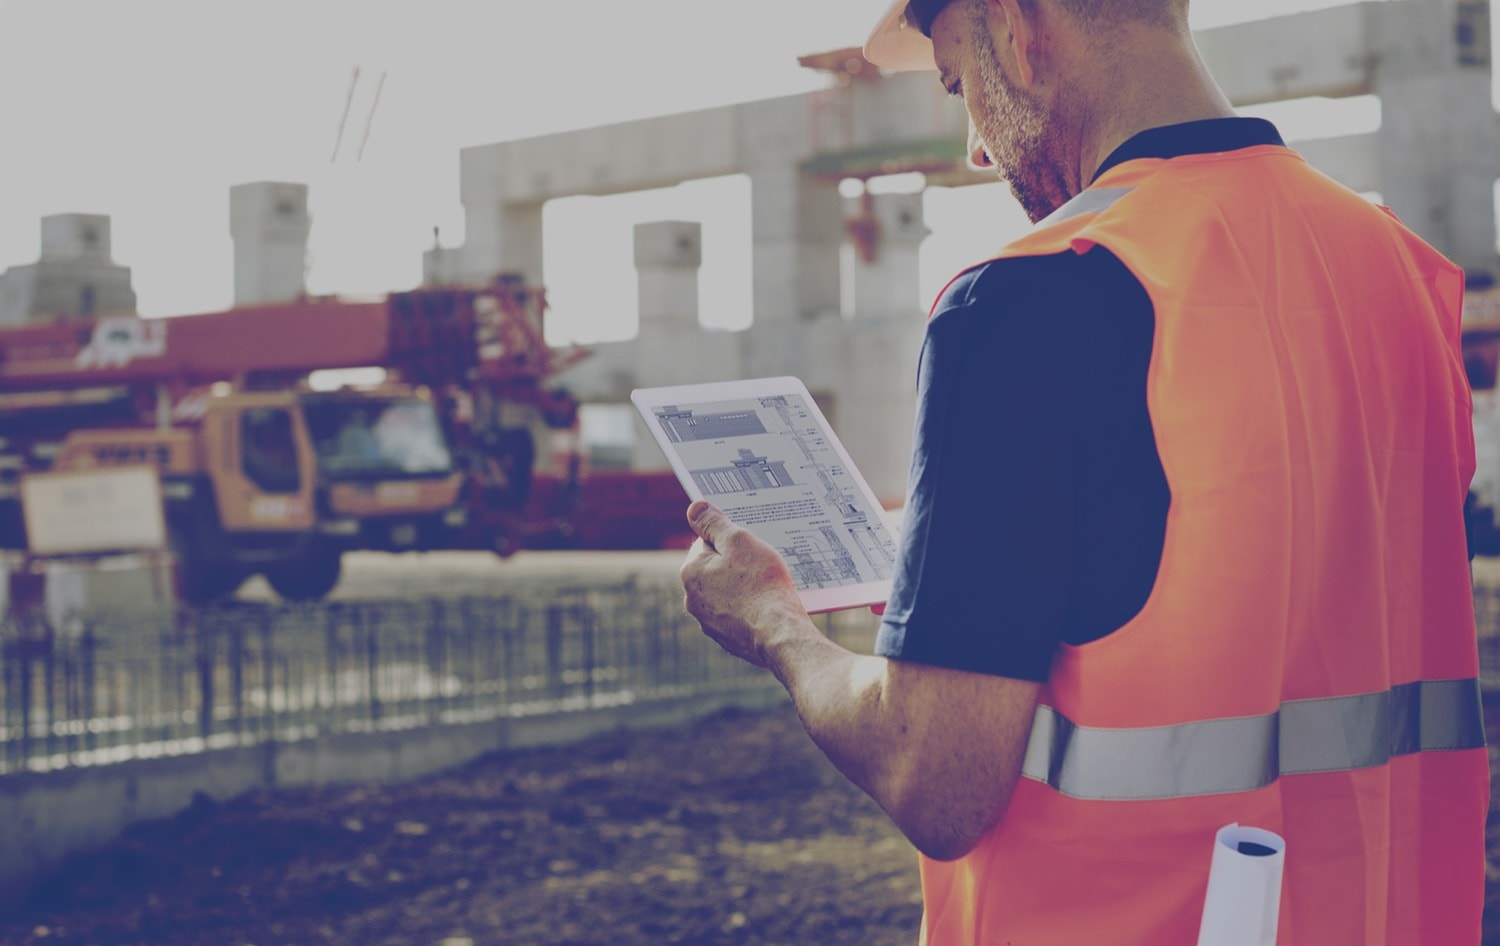 A construction worker on a job site looking at blueprints on a tablet.